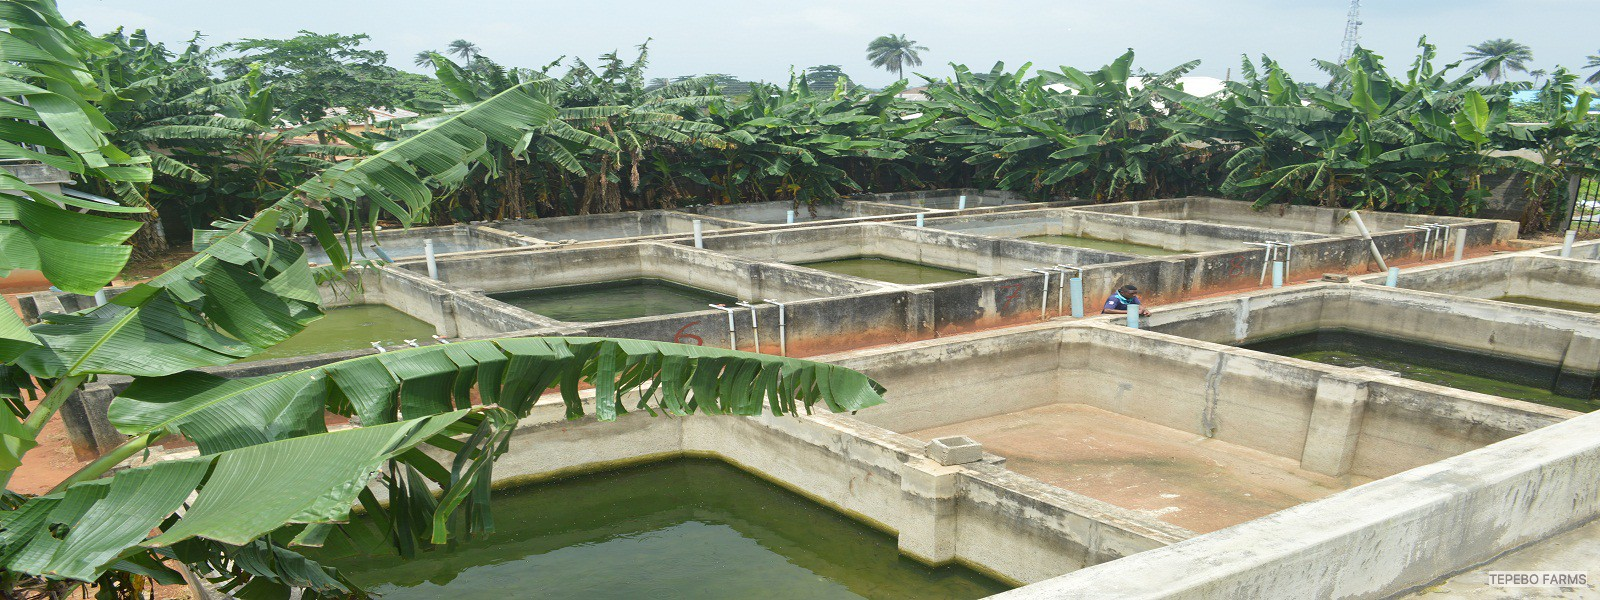 FISH GROW-OUT PONDS